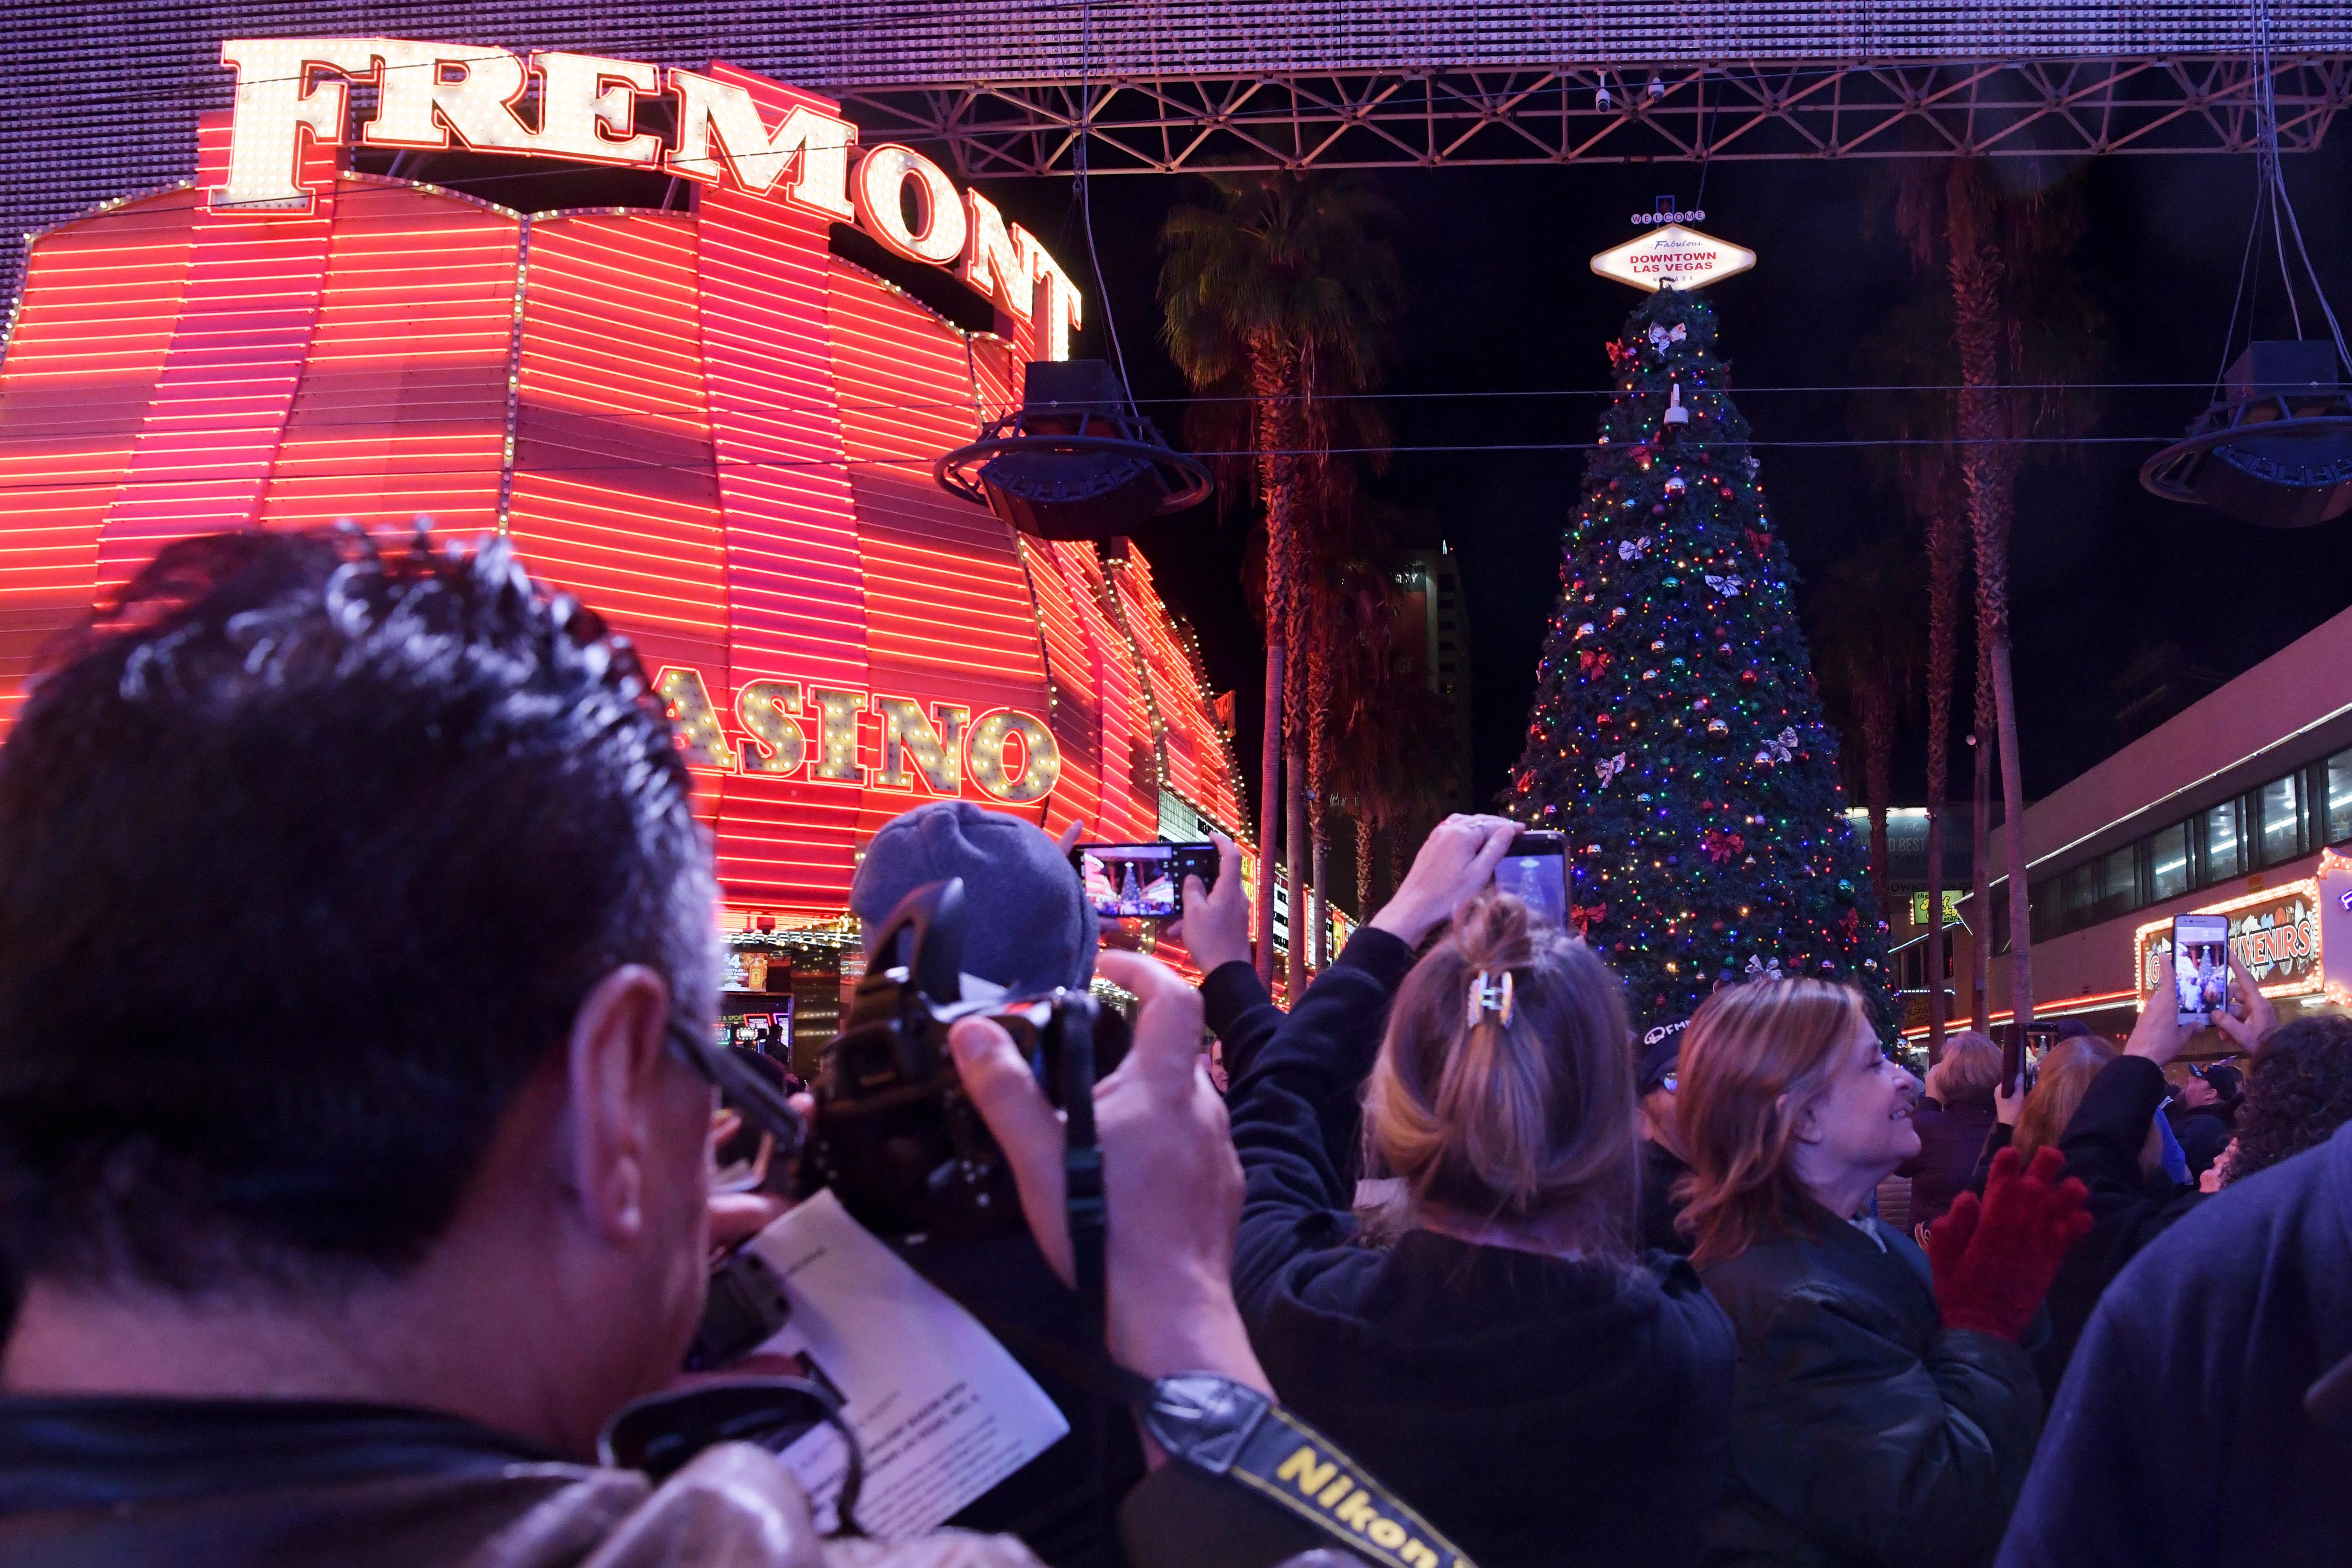 People turn to look at the lit tree during the annual lighting of a Christmas tree at the Fremont Street Experience Tuesday, December 4, 2018. CREDIT: Sam Morris/Las Vegas News Bureau